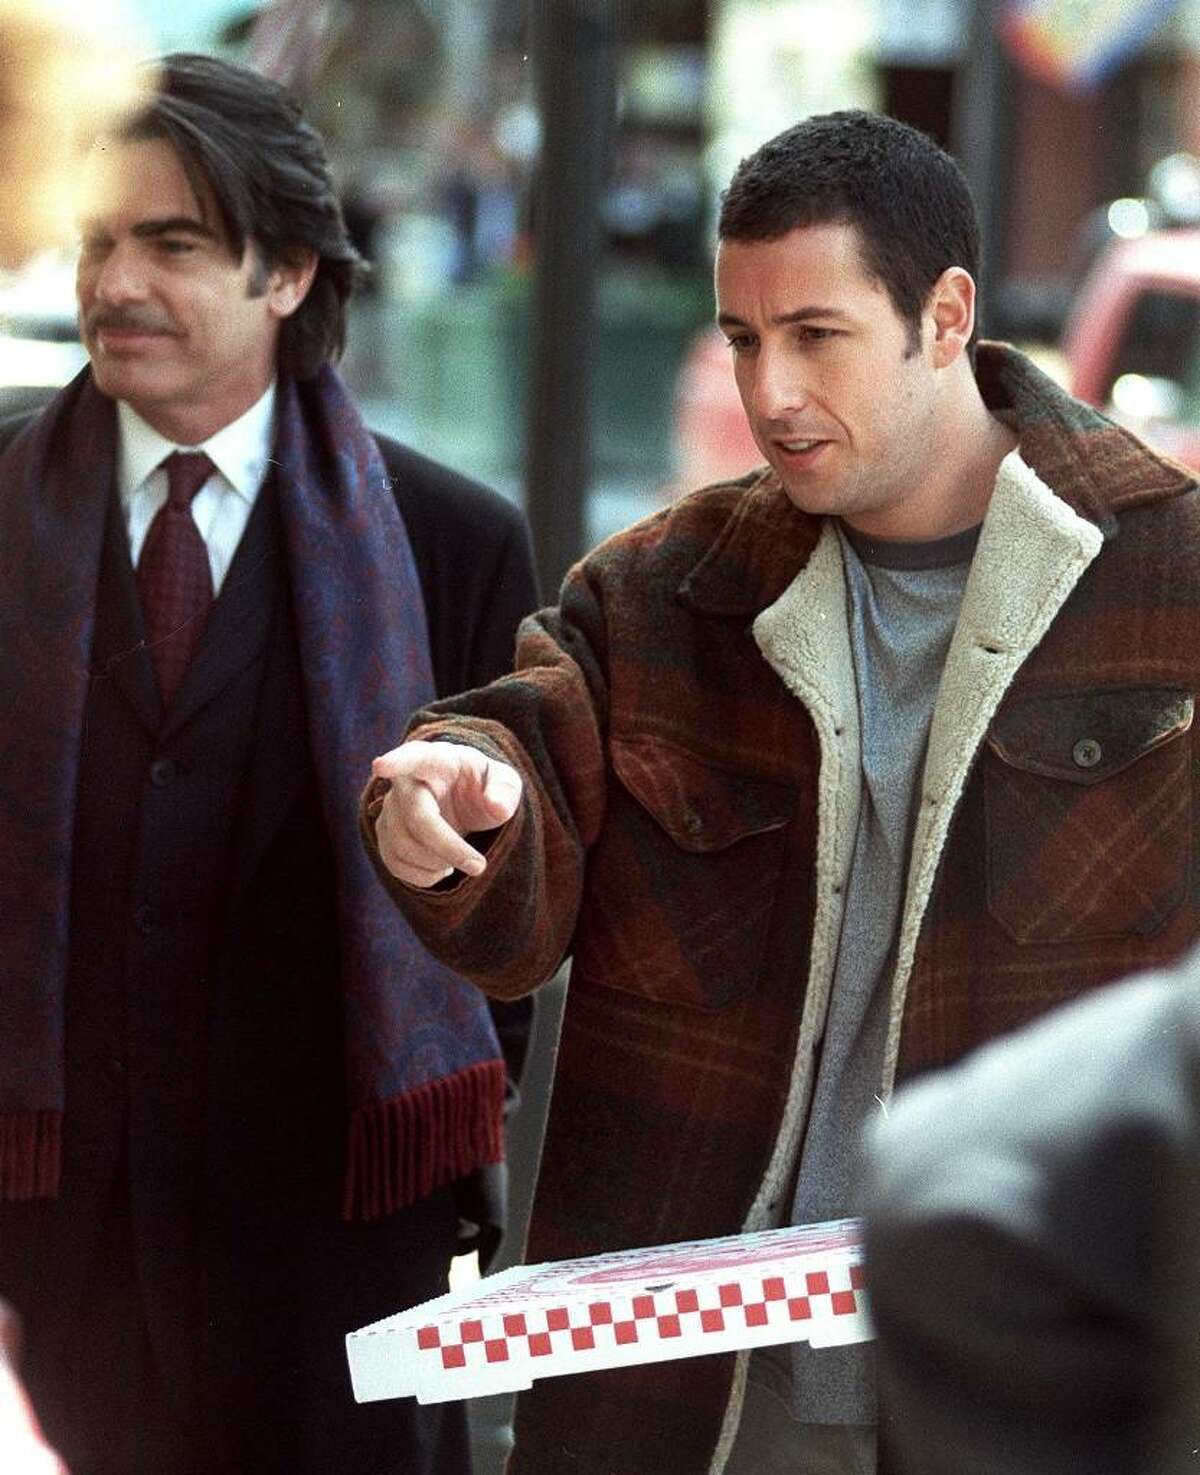 Adam Sandler, right, in a scene from the filming of his movie,